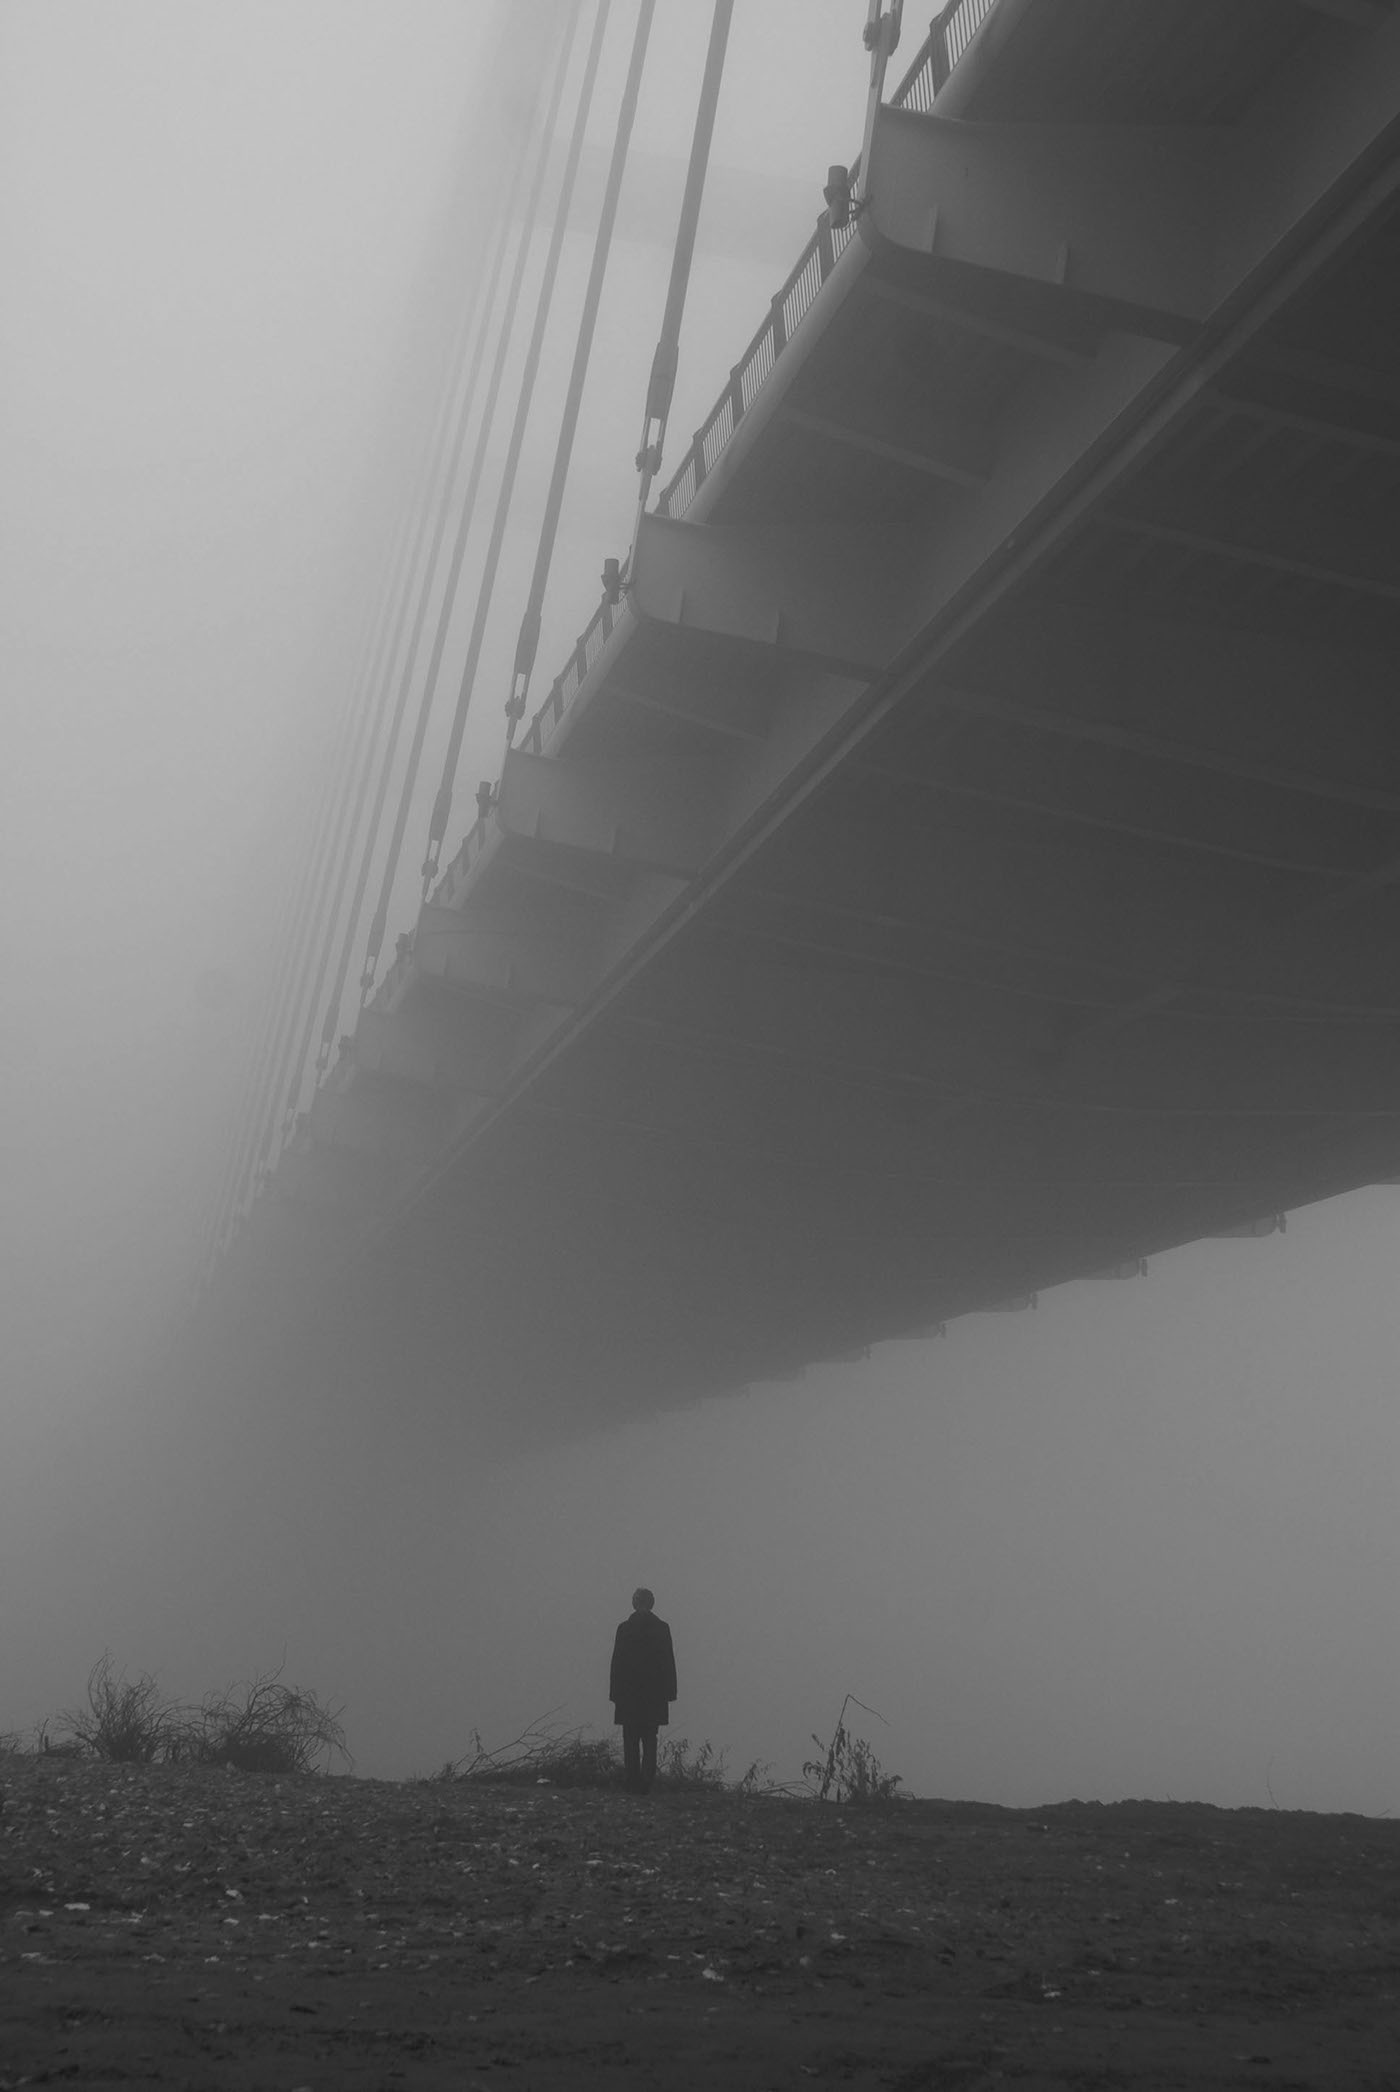 Bridge in the fog | Łukasz Breitenbach